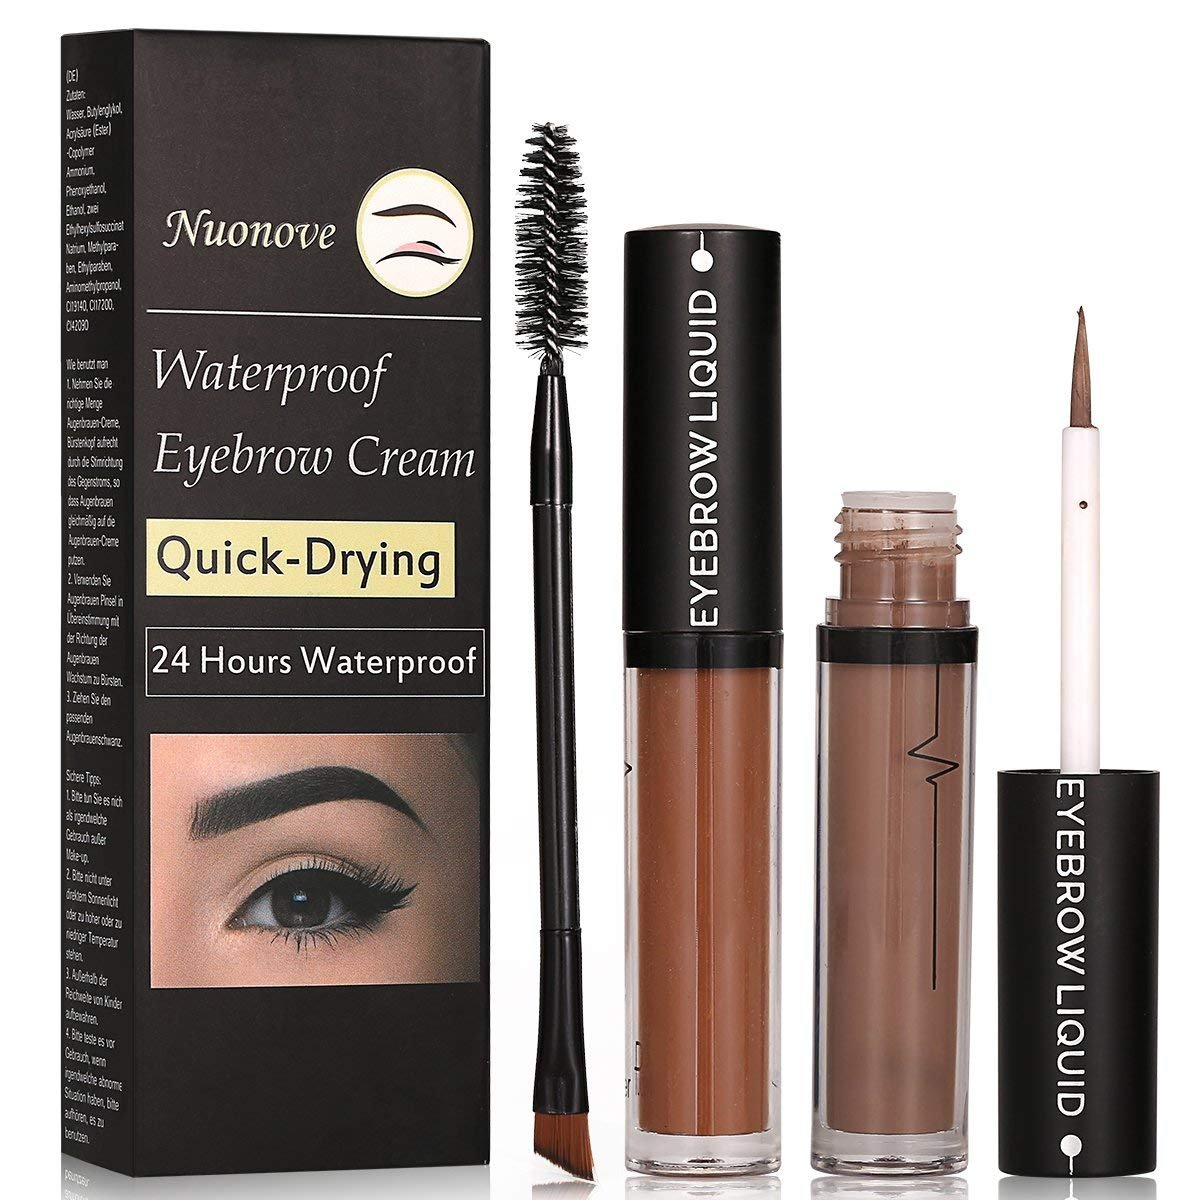 Eyebrow Gel Eyebrow Tint Eyebrow Cream, Professional Eyebrow Coloring Pomade Cream Waterproof Long Lasting,Long Lasting Eyebrow Gel for Waterproof Eyebrow Makeup Set 2 pc … (1pc) Nuonove